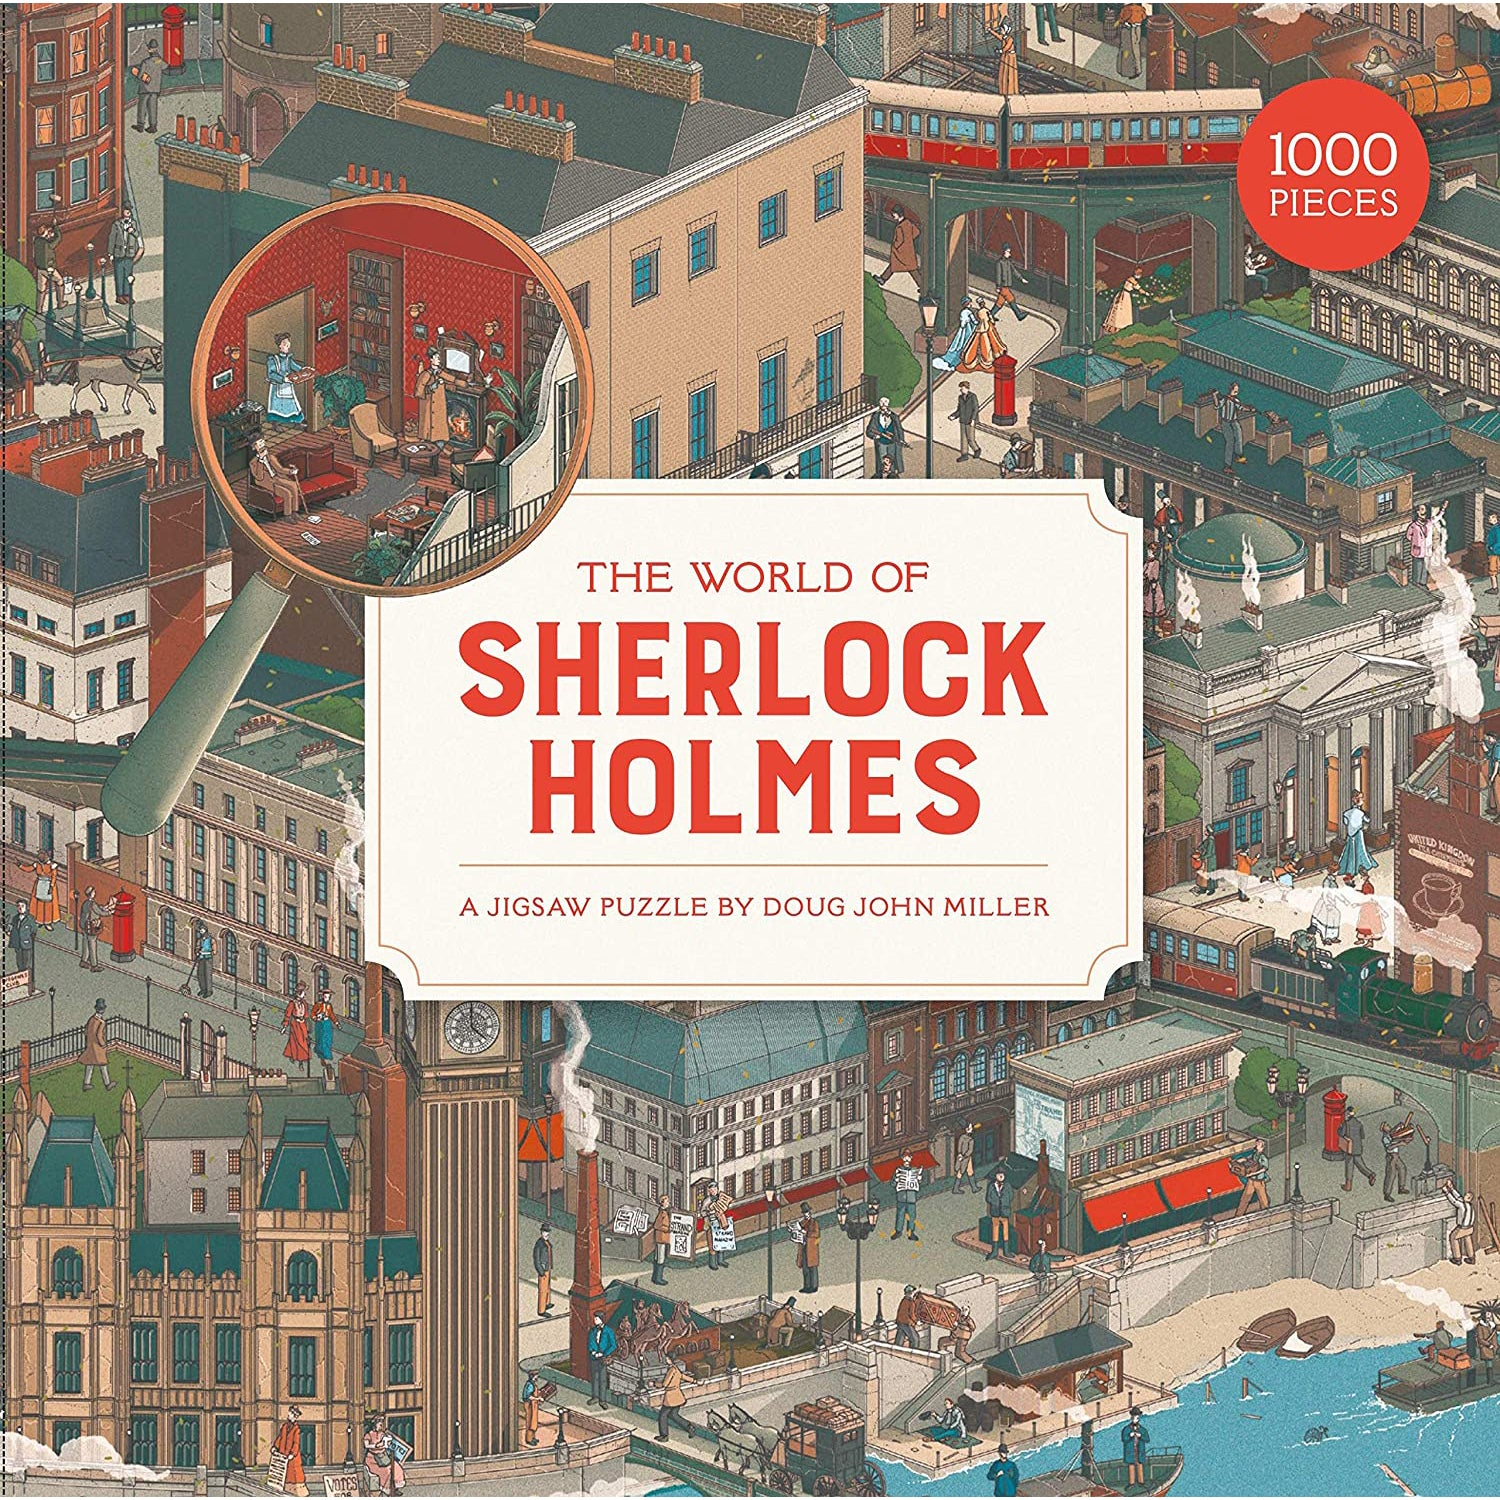 The World of Sherlock Holmes Jigsaw Puzzle